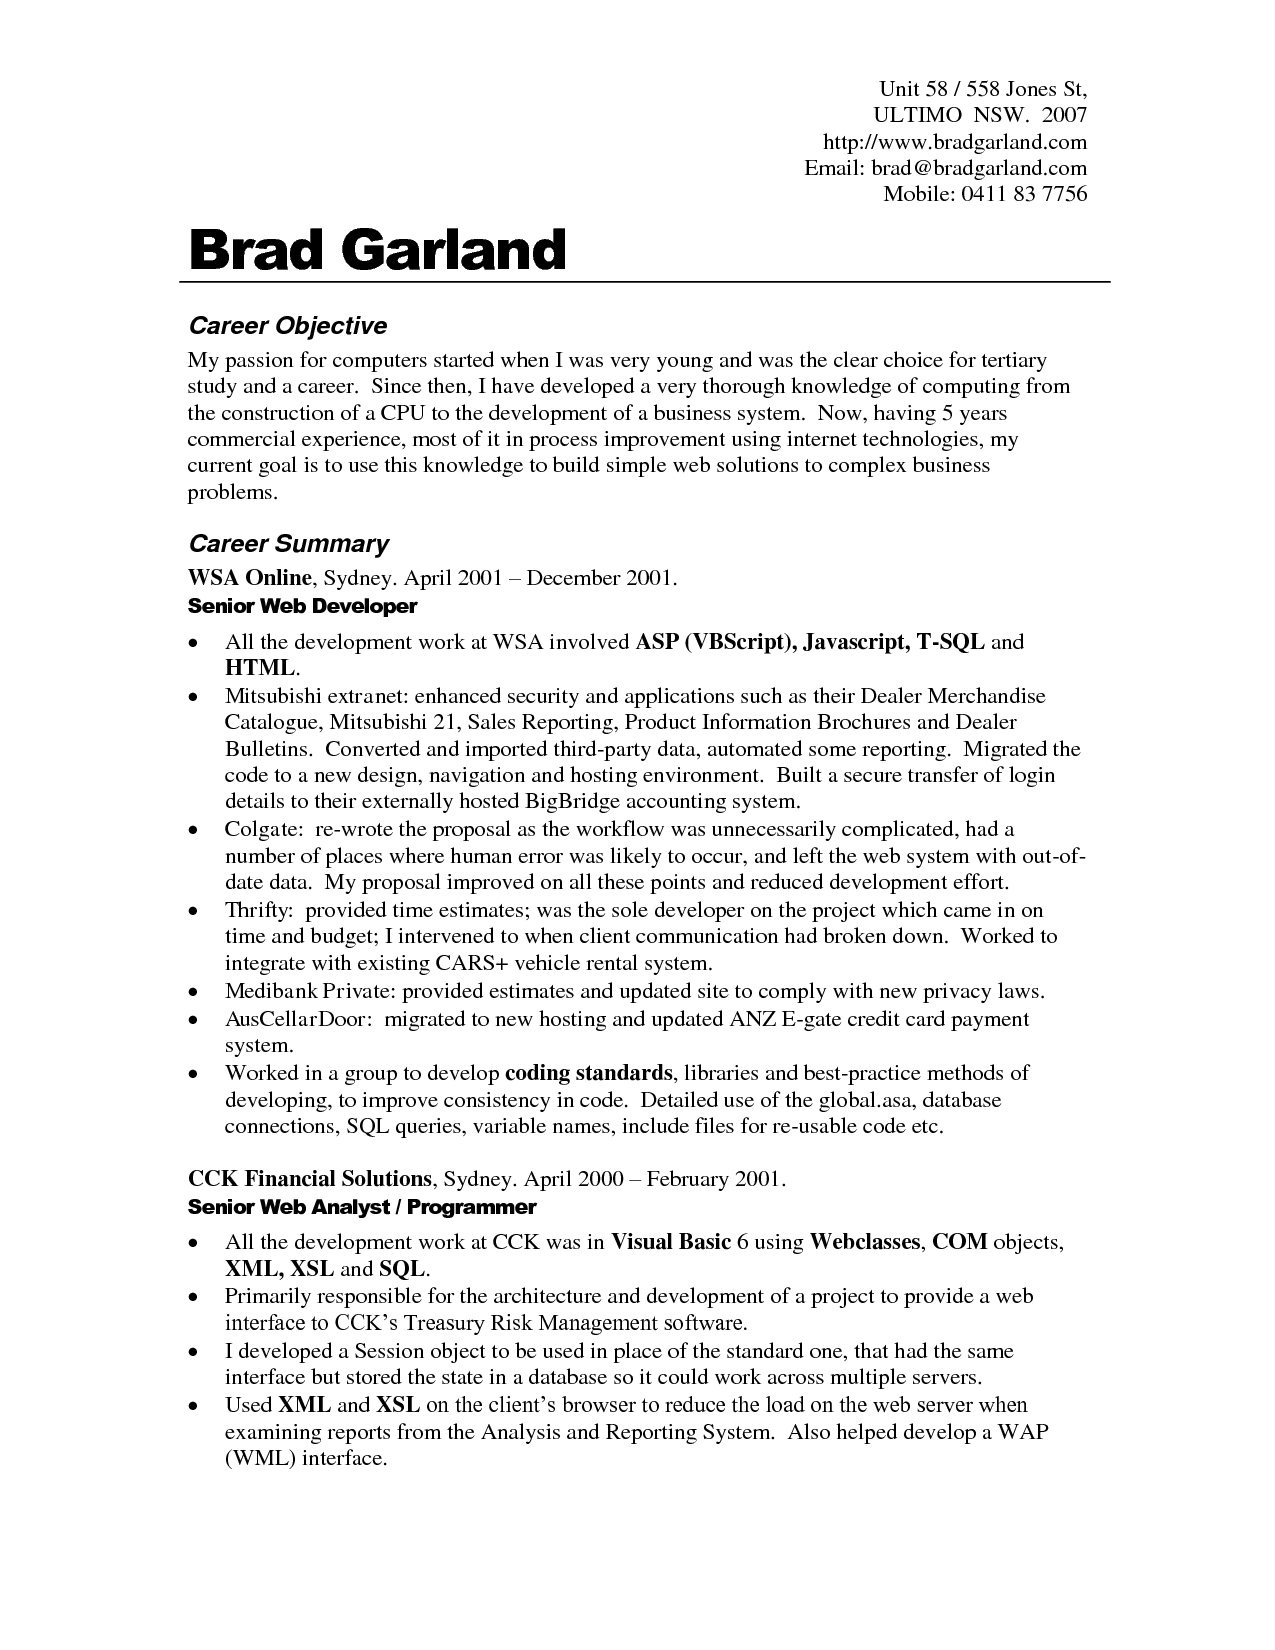 Best Resume Objectives Beauteous Resume Objectives Examples Best Templateresume Objective Examples Design Ideas